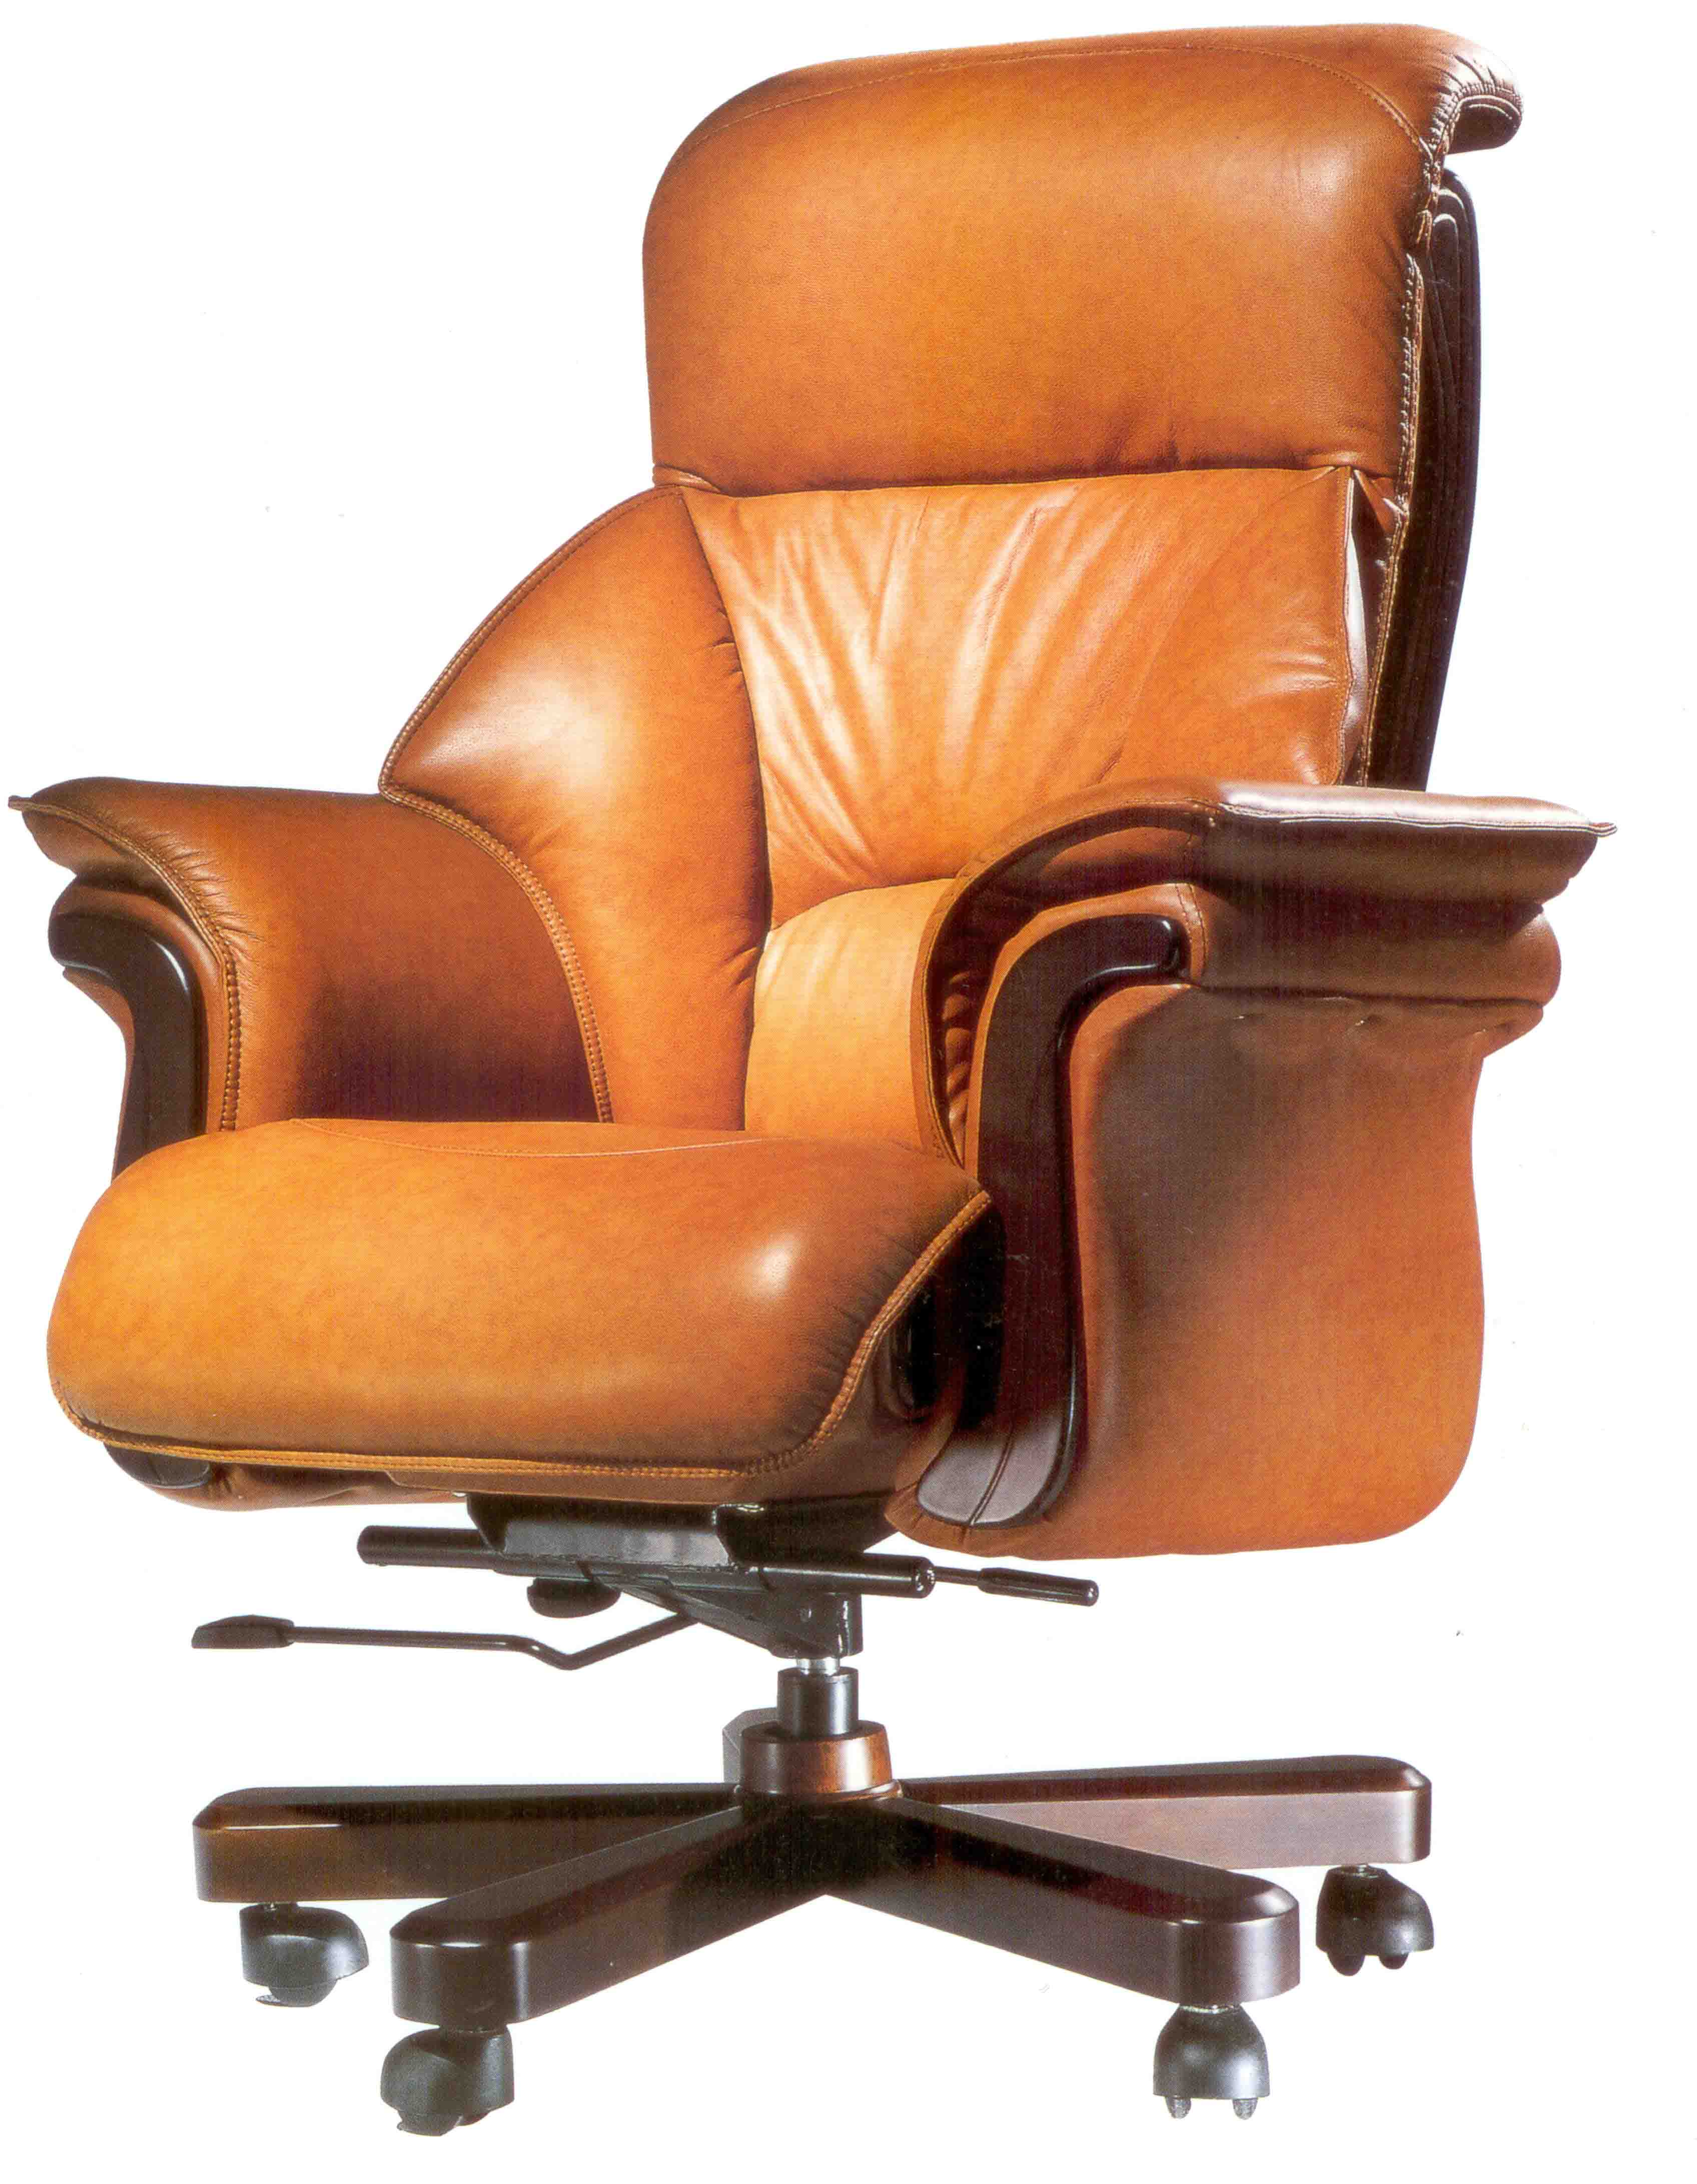 Office Furniture Office Chairs Macalinne